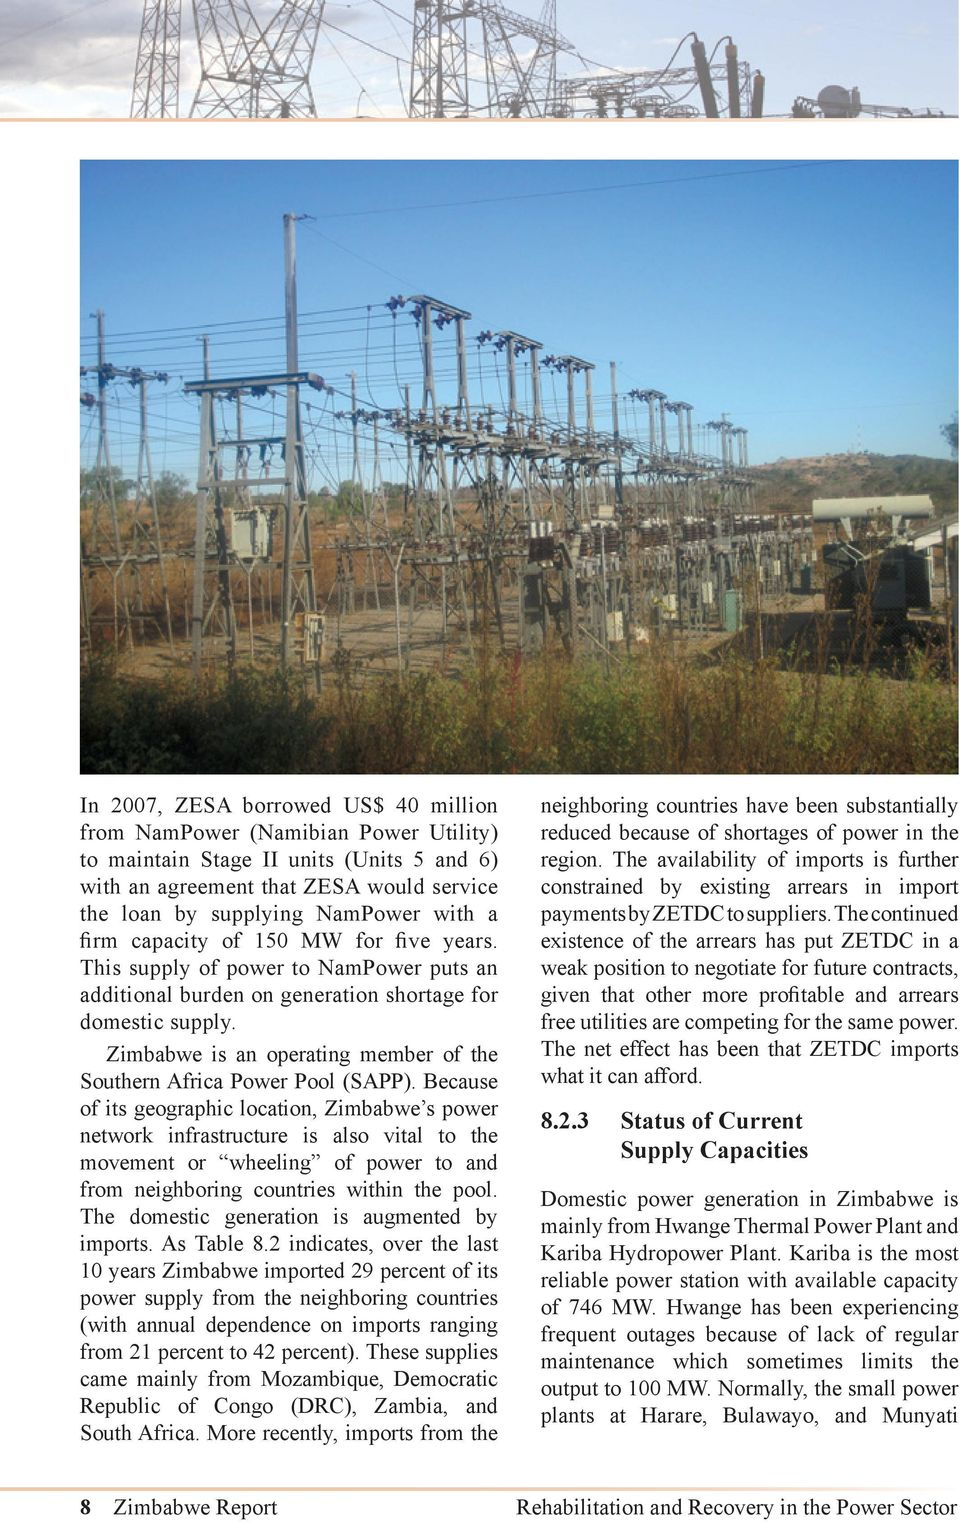 Zimbabwe is an operating member of the Southern Africa Power Pool (SAPP).